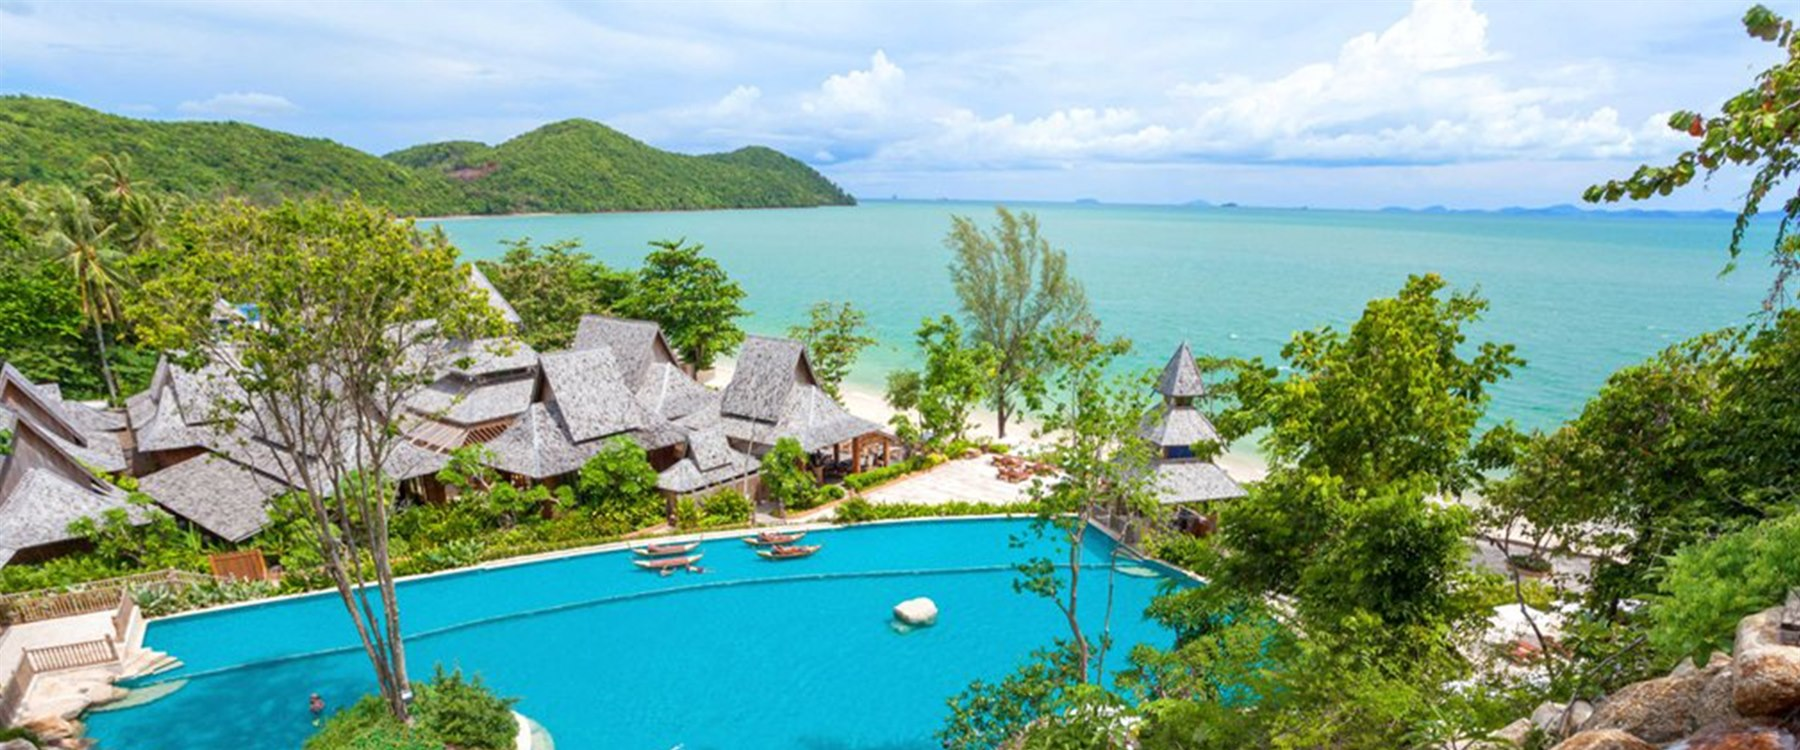 Main pool at Santhiya Koh Yao Yai Resort & Spa